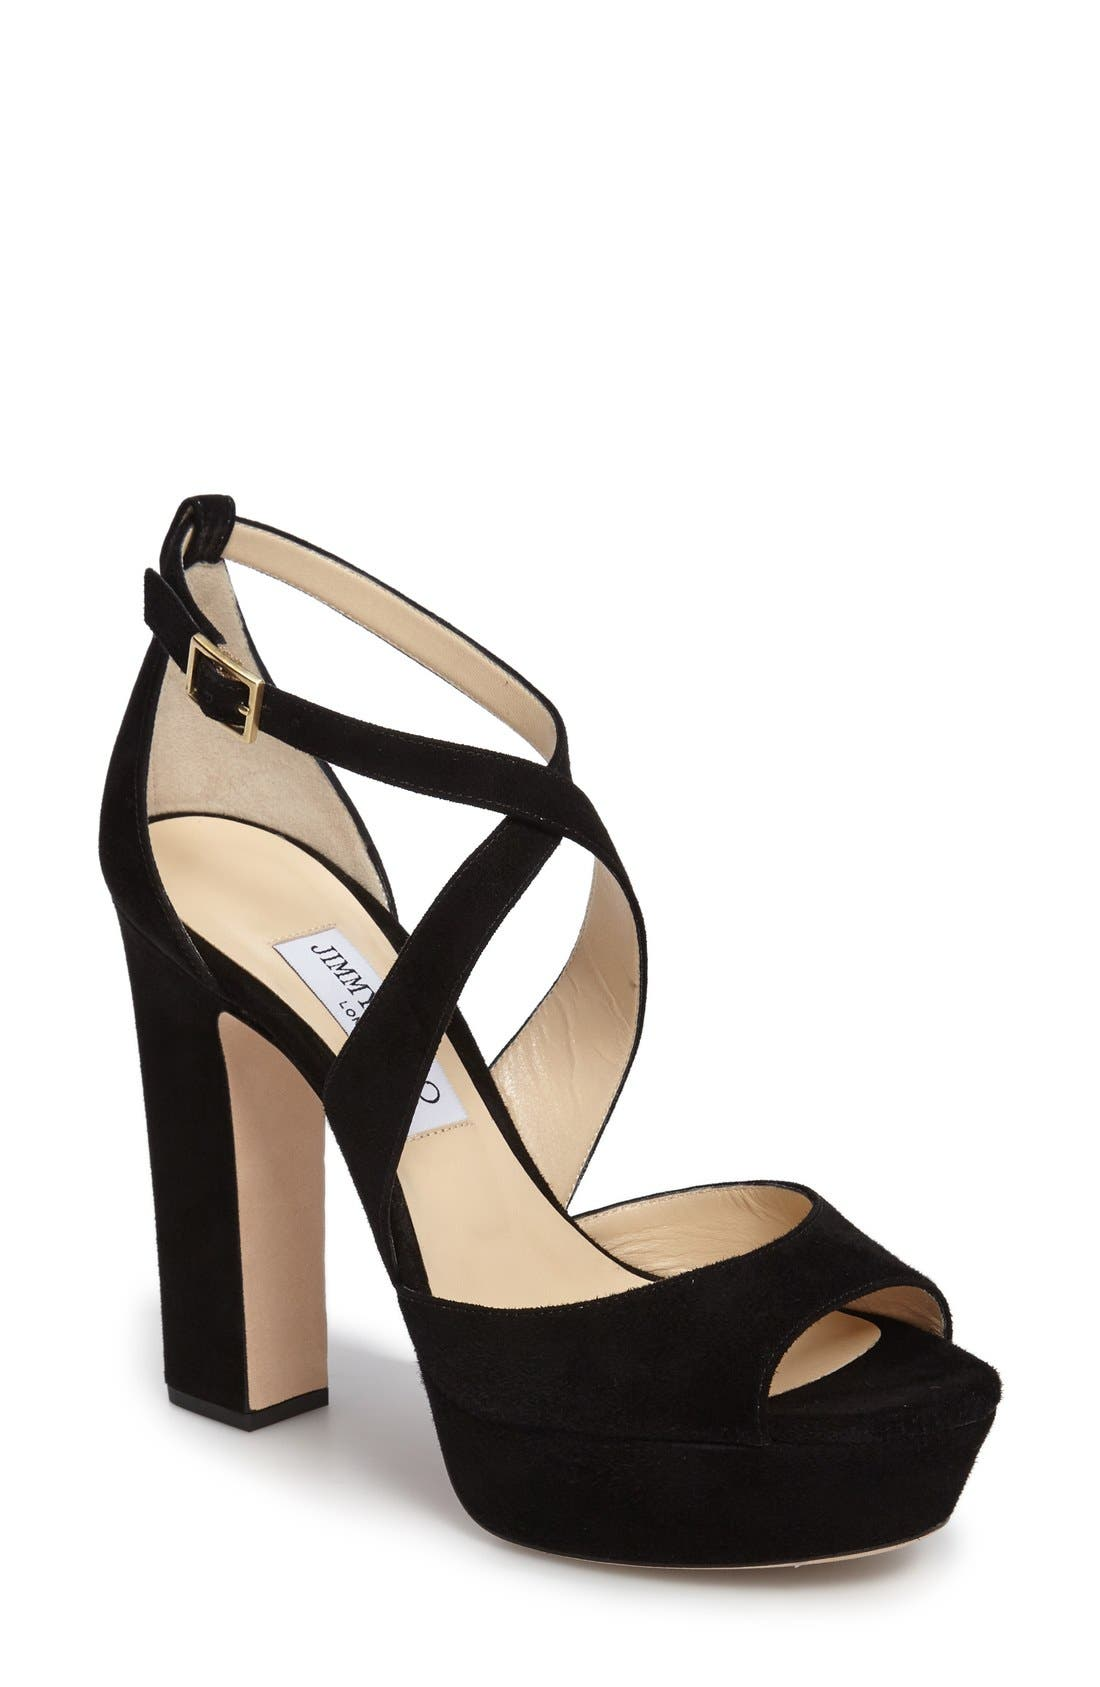 Alternate Image 1 Selected - Jimmy Choo April Platform Sandal (Women)